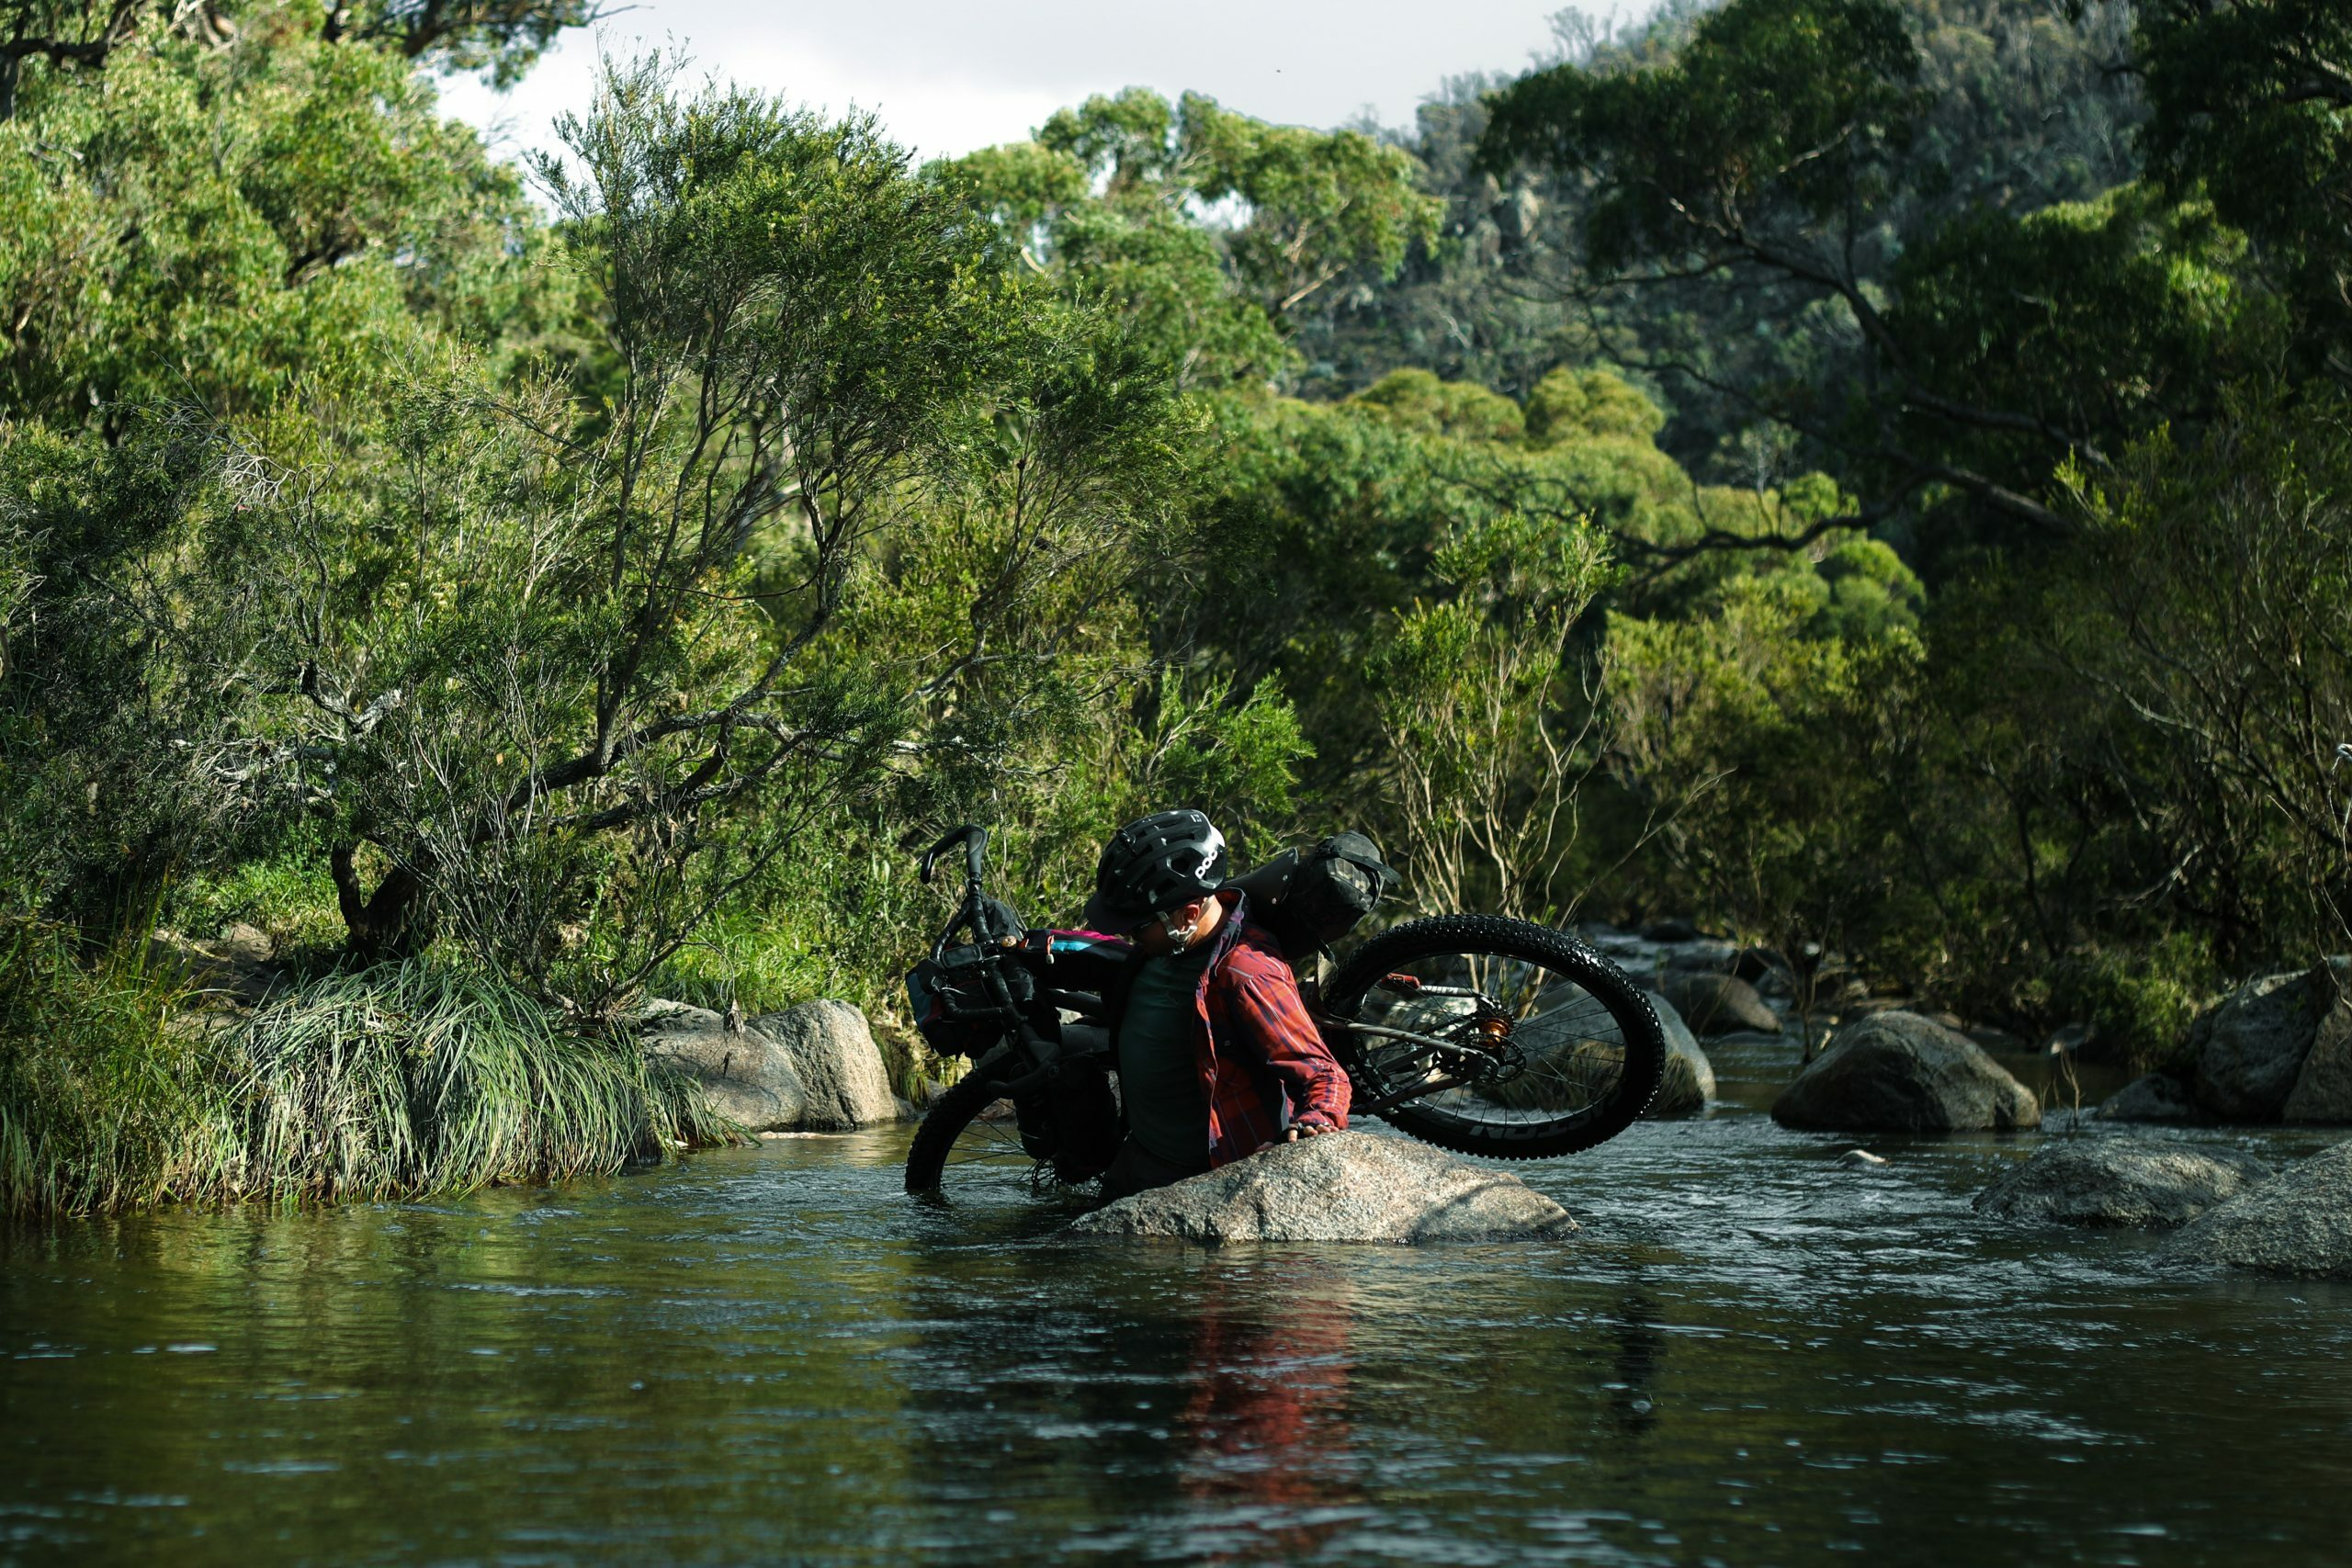 The deepest river crossing, bikepacking to Horse Gully Hut